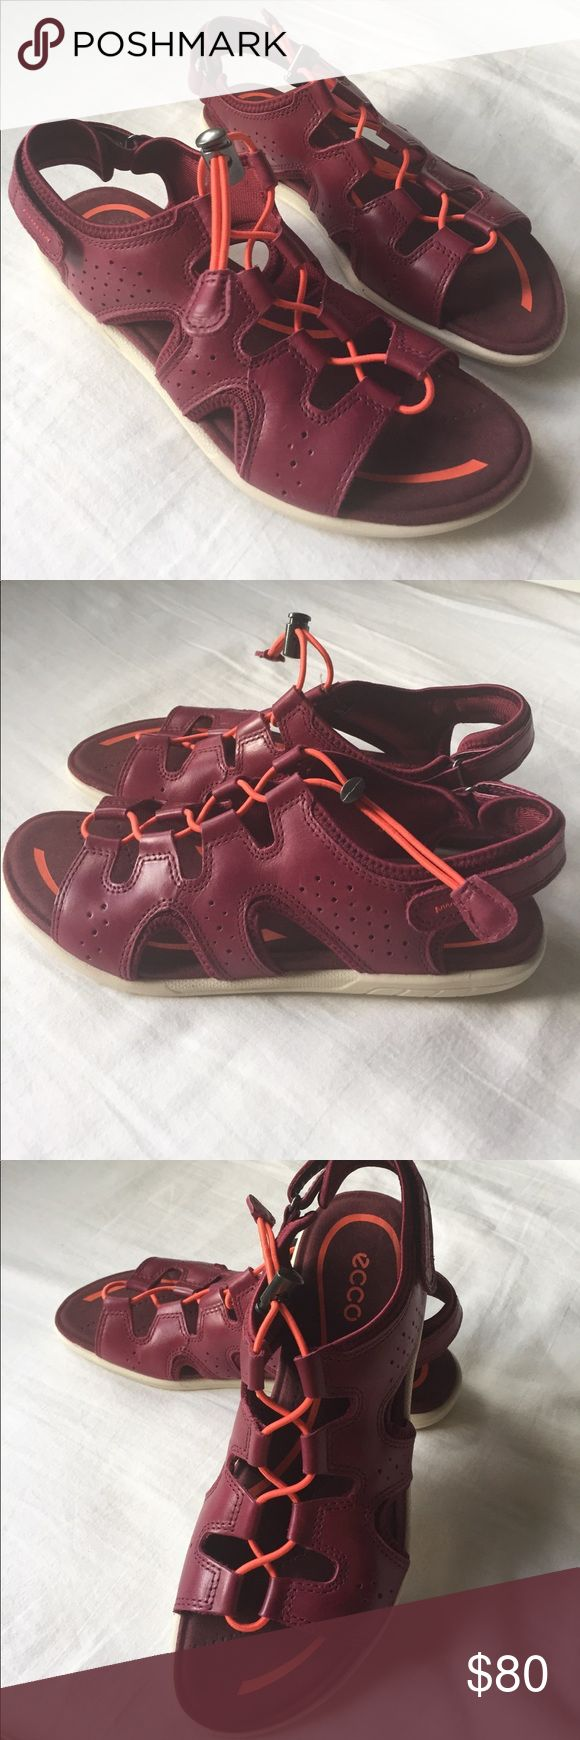 New ECCO Sandal New, ECCO Leather Sandal. Velcro strap in the back. Size 38. No Box. Never worn. Ecco Shoes Sandals